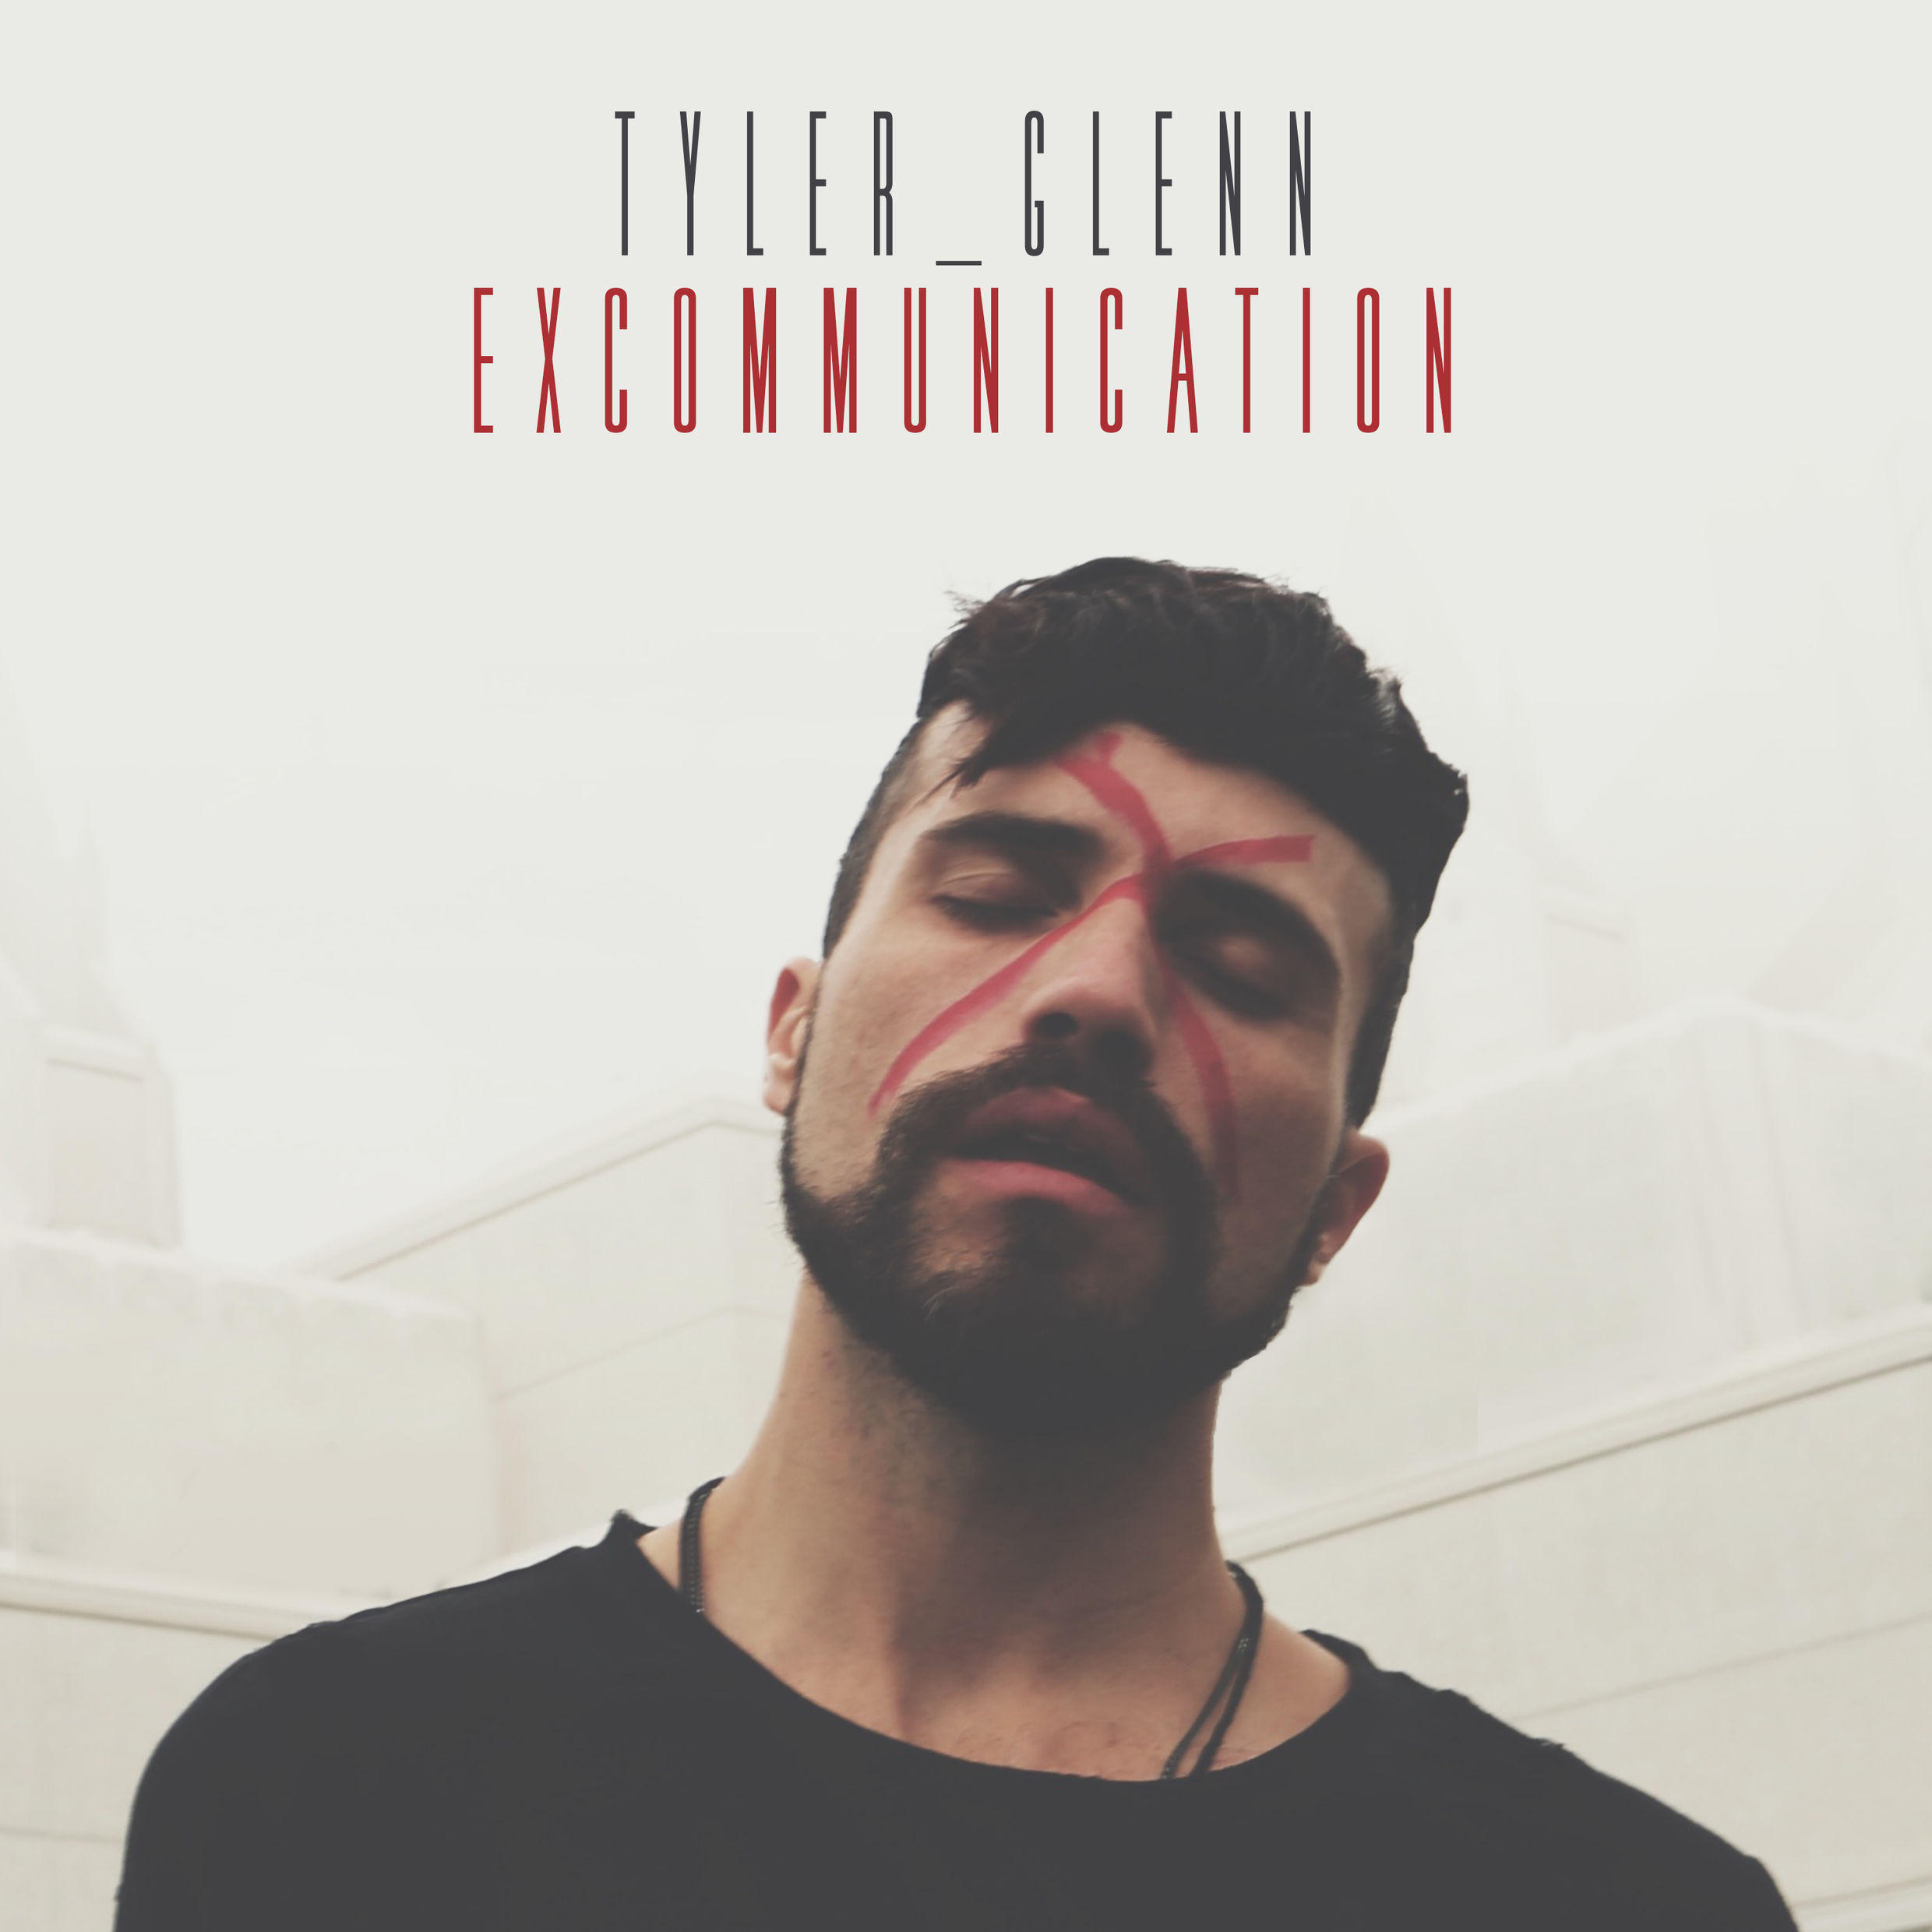 tyler-glenn-excommunication-2016-2480x2480